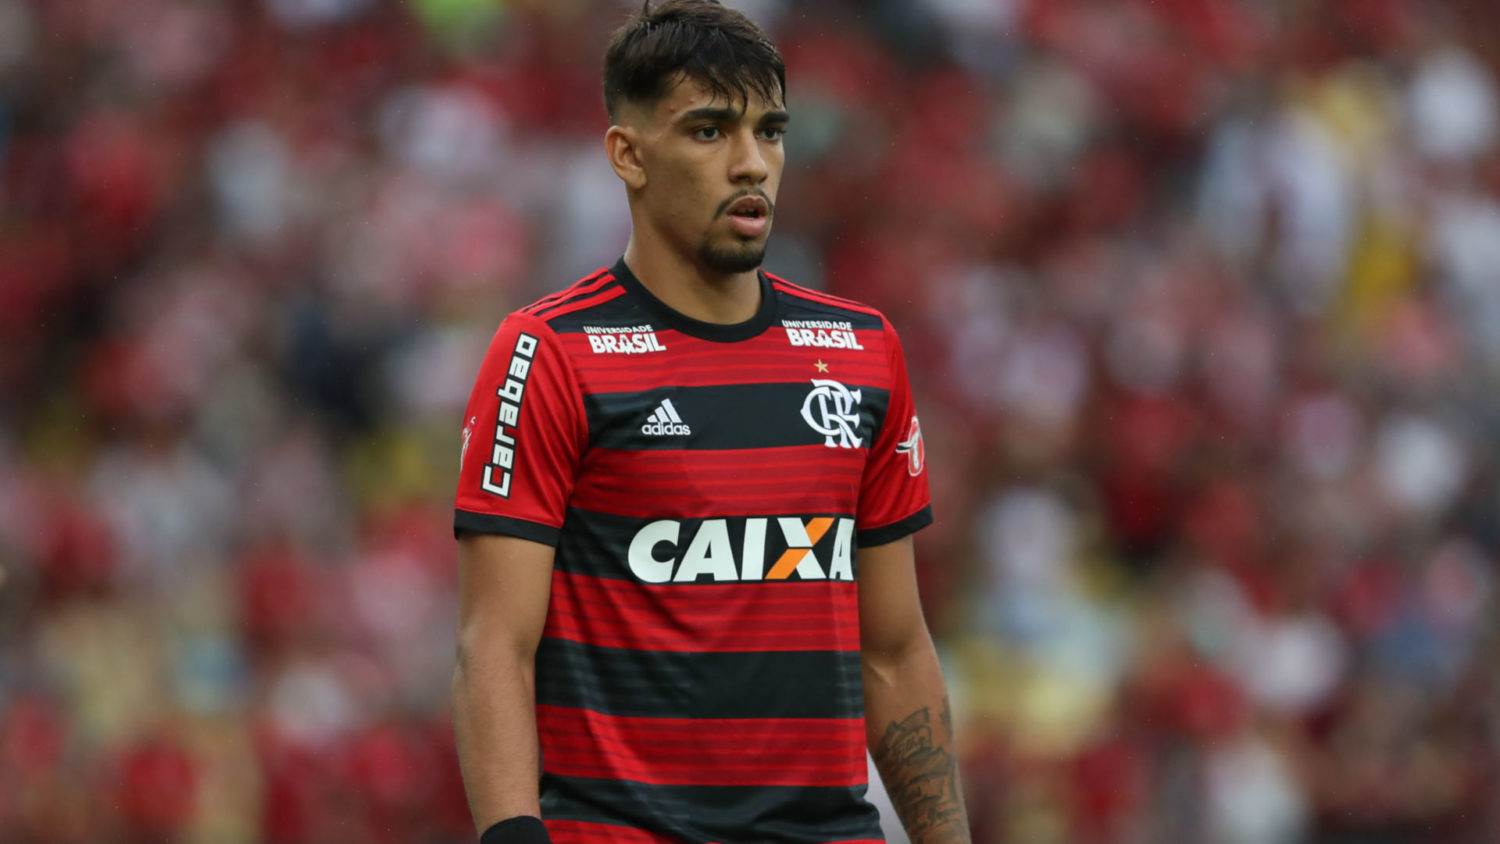 Liverpool and Manchester United want Flamengo's Lucas Paqueta